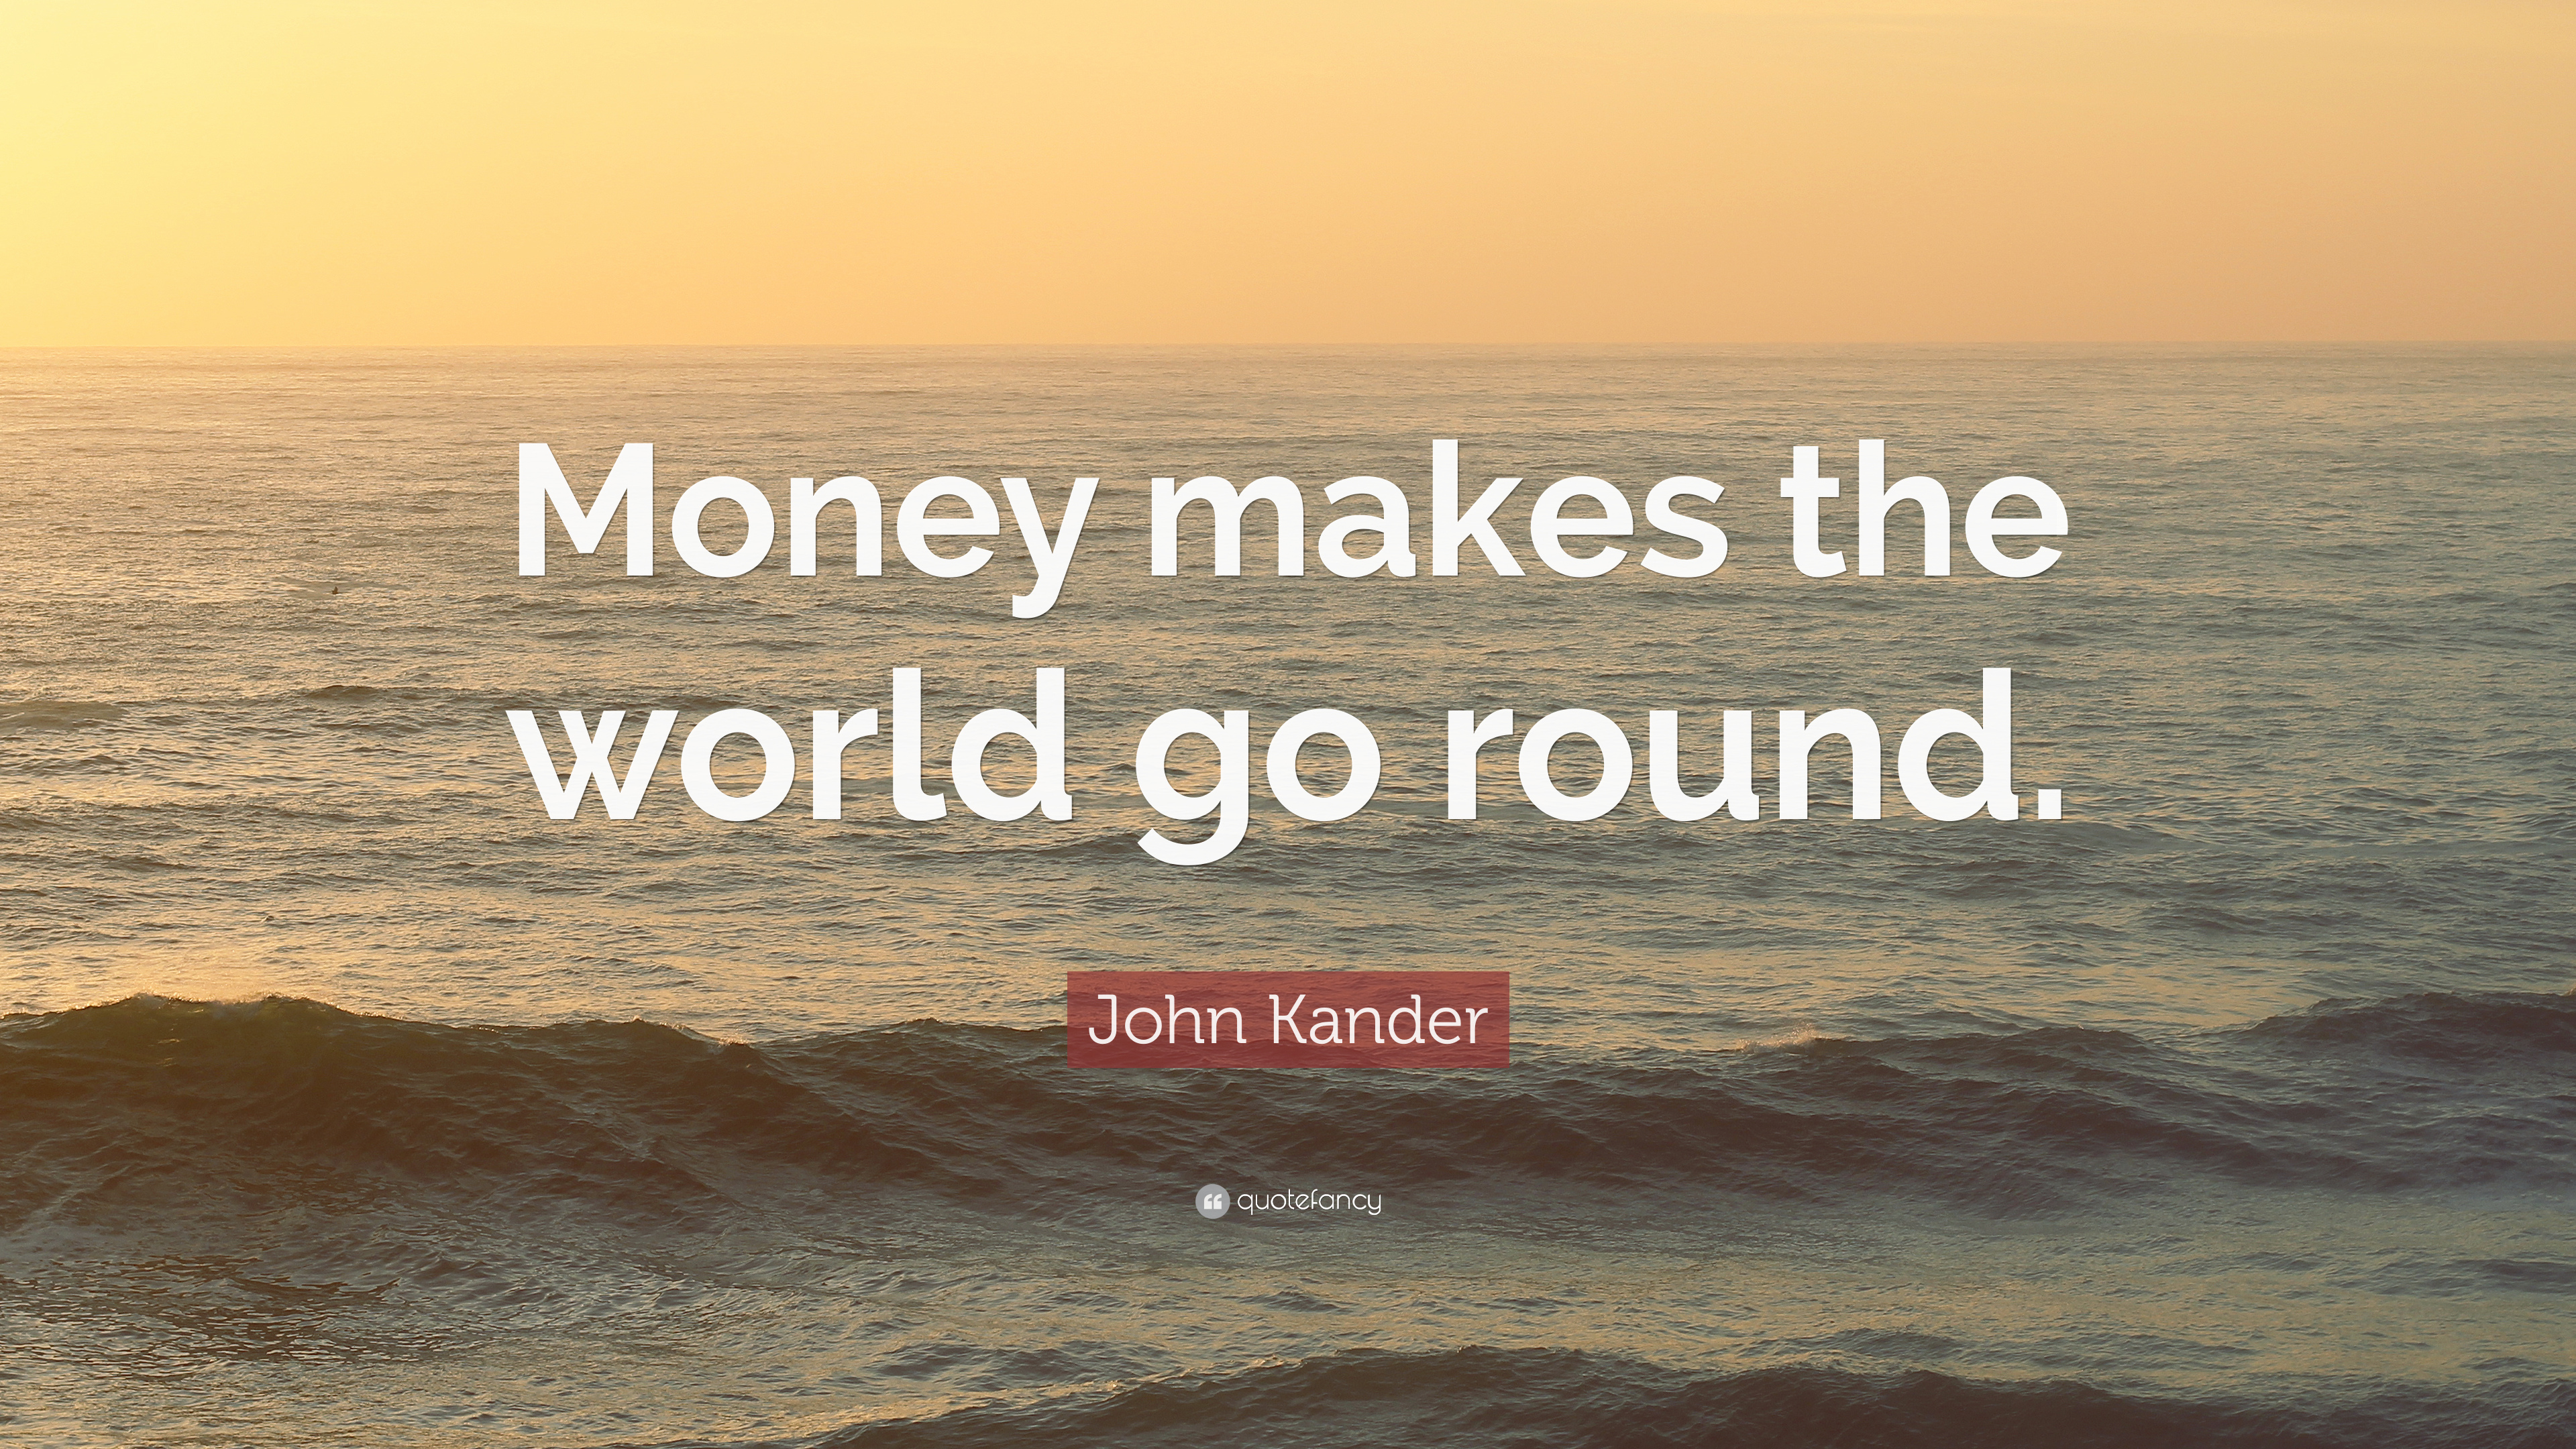 money makes the world go round The phrase money makes the world go 'round may be an apt description of how money facilitates economic exchange the parable of the trader may explain why money is an efficient method of effecting transactions, but it does not explain why money is held.